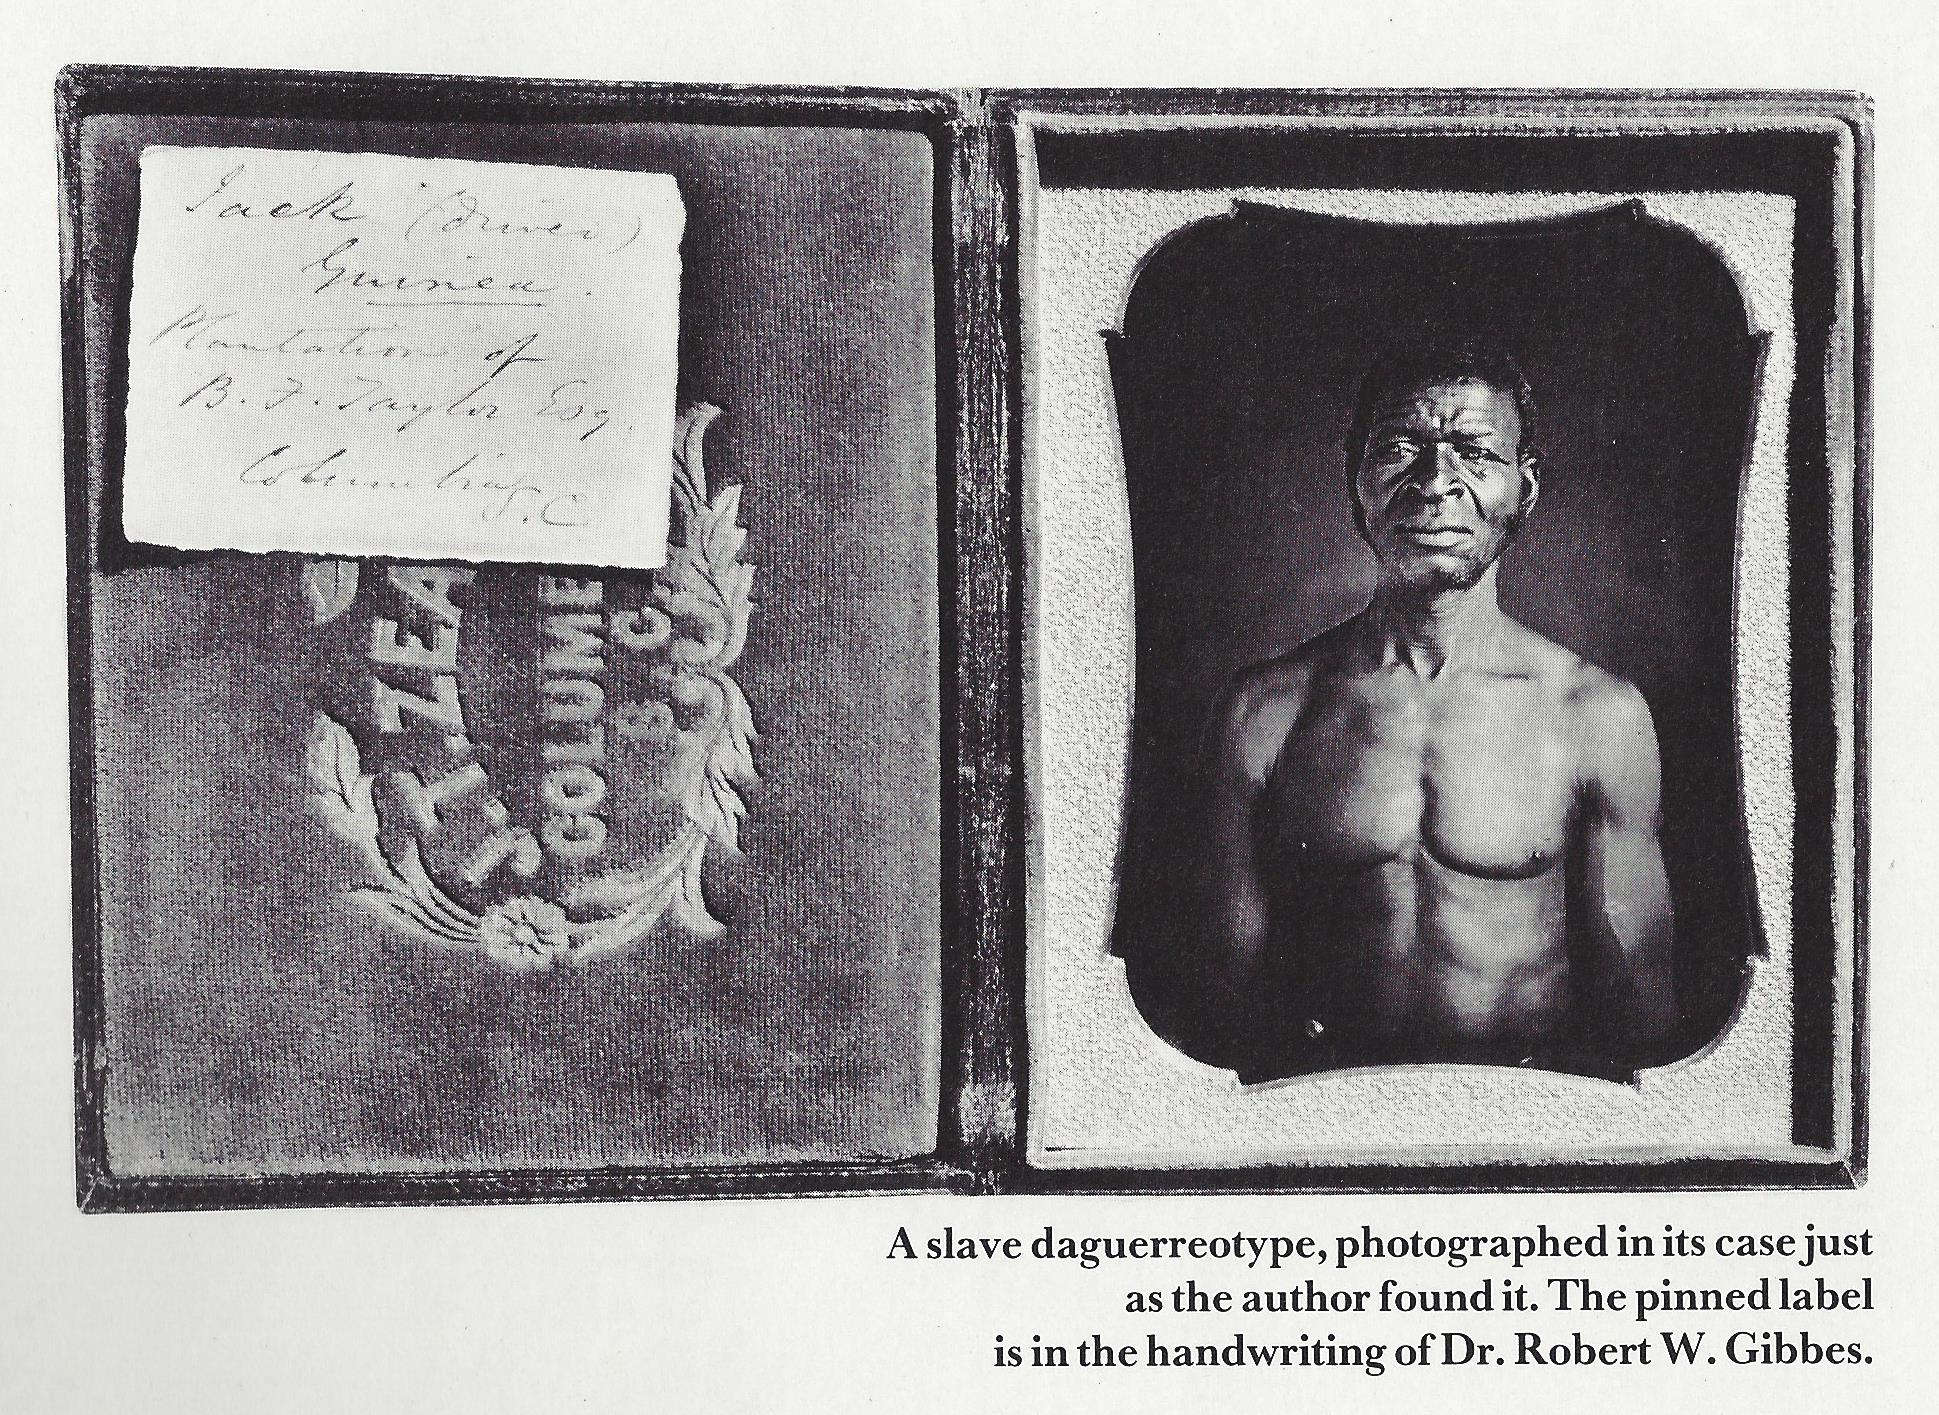 A slave daguerrotype, photographedin its case just as the author found it. The pinned label is in the handwriting of Dr. Robert W. Gibbes.